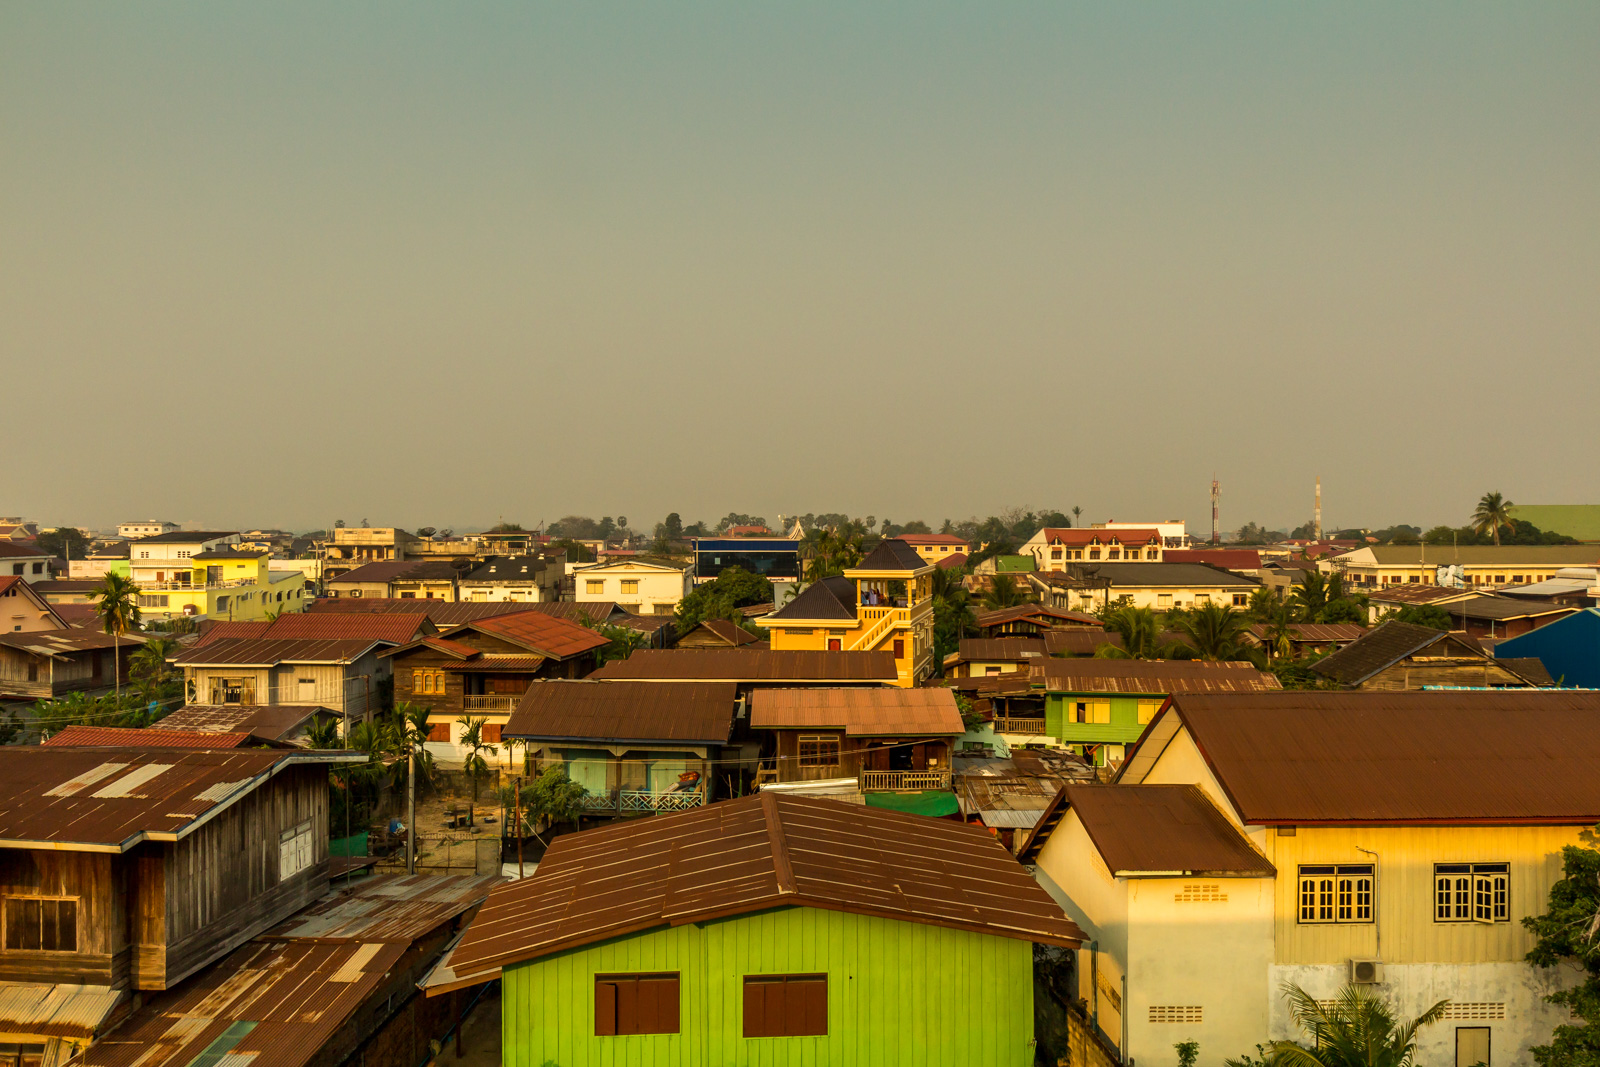 One last look at Savannakhet.